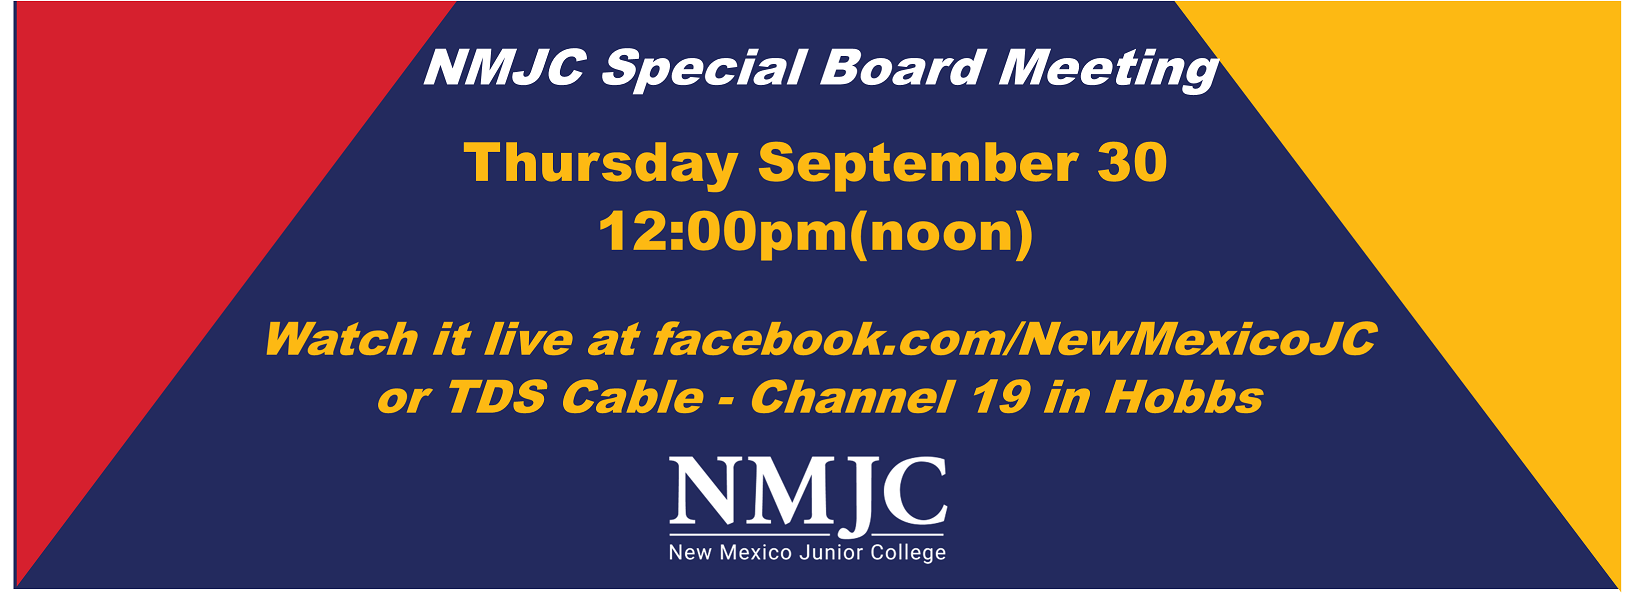 Special Board Meeting 9.30.21